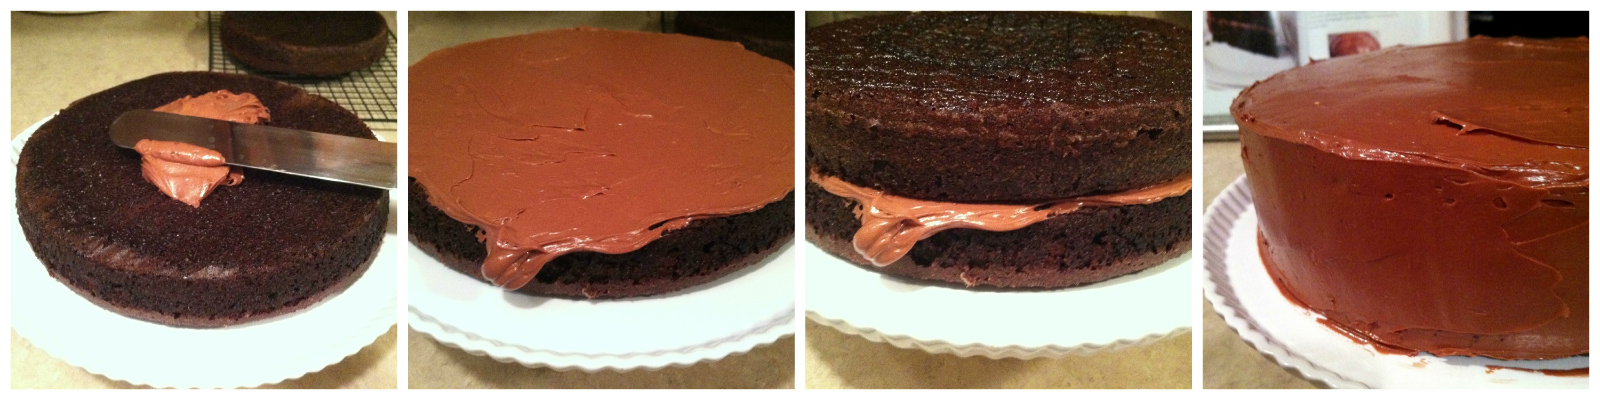 assembling a layer cake | hello, sweetie!